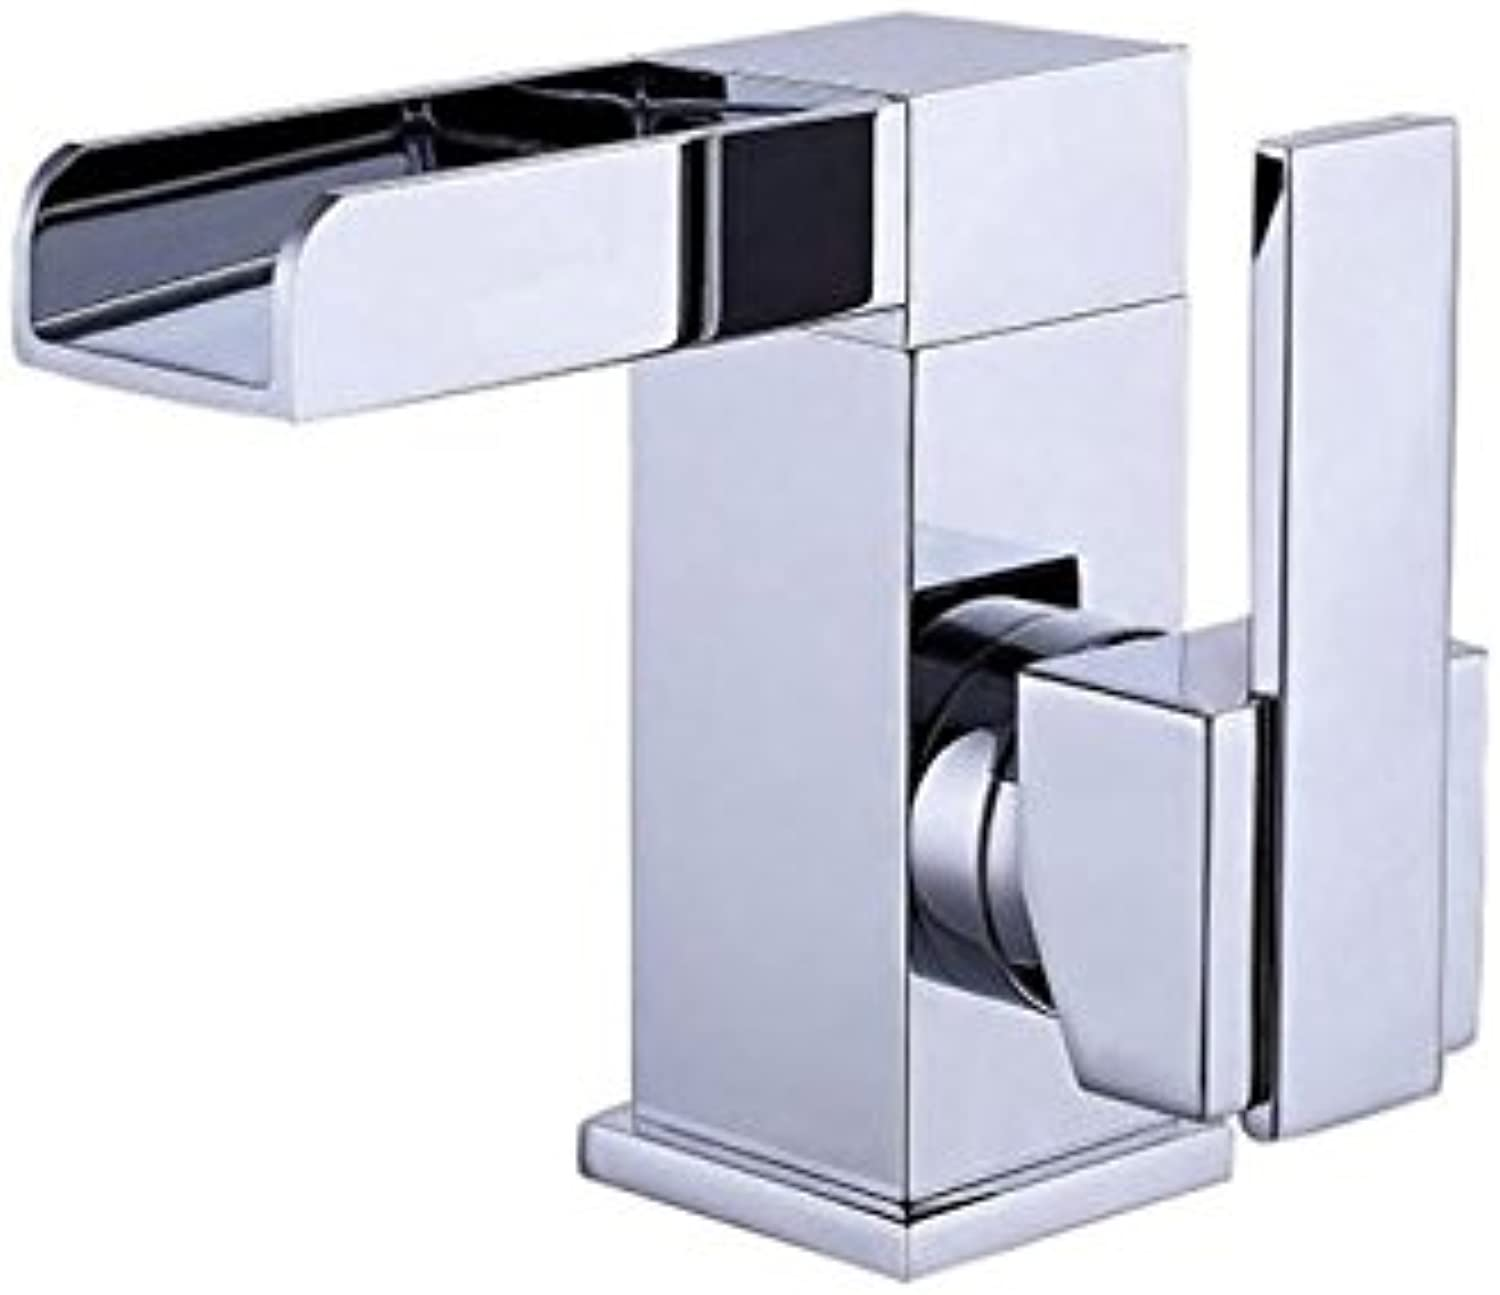 FEN Square waterfall single handle face plate faucet high grade chrome bathroom bathroom faucet